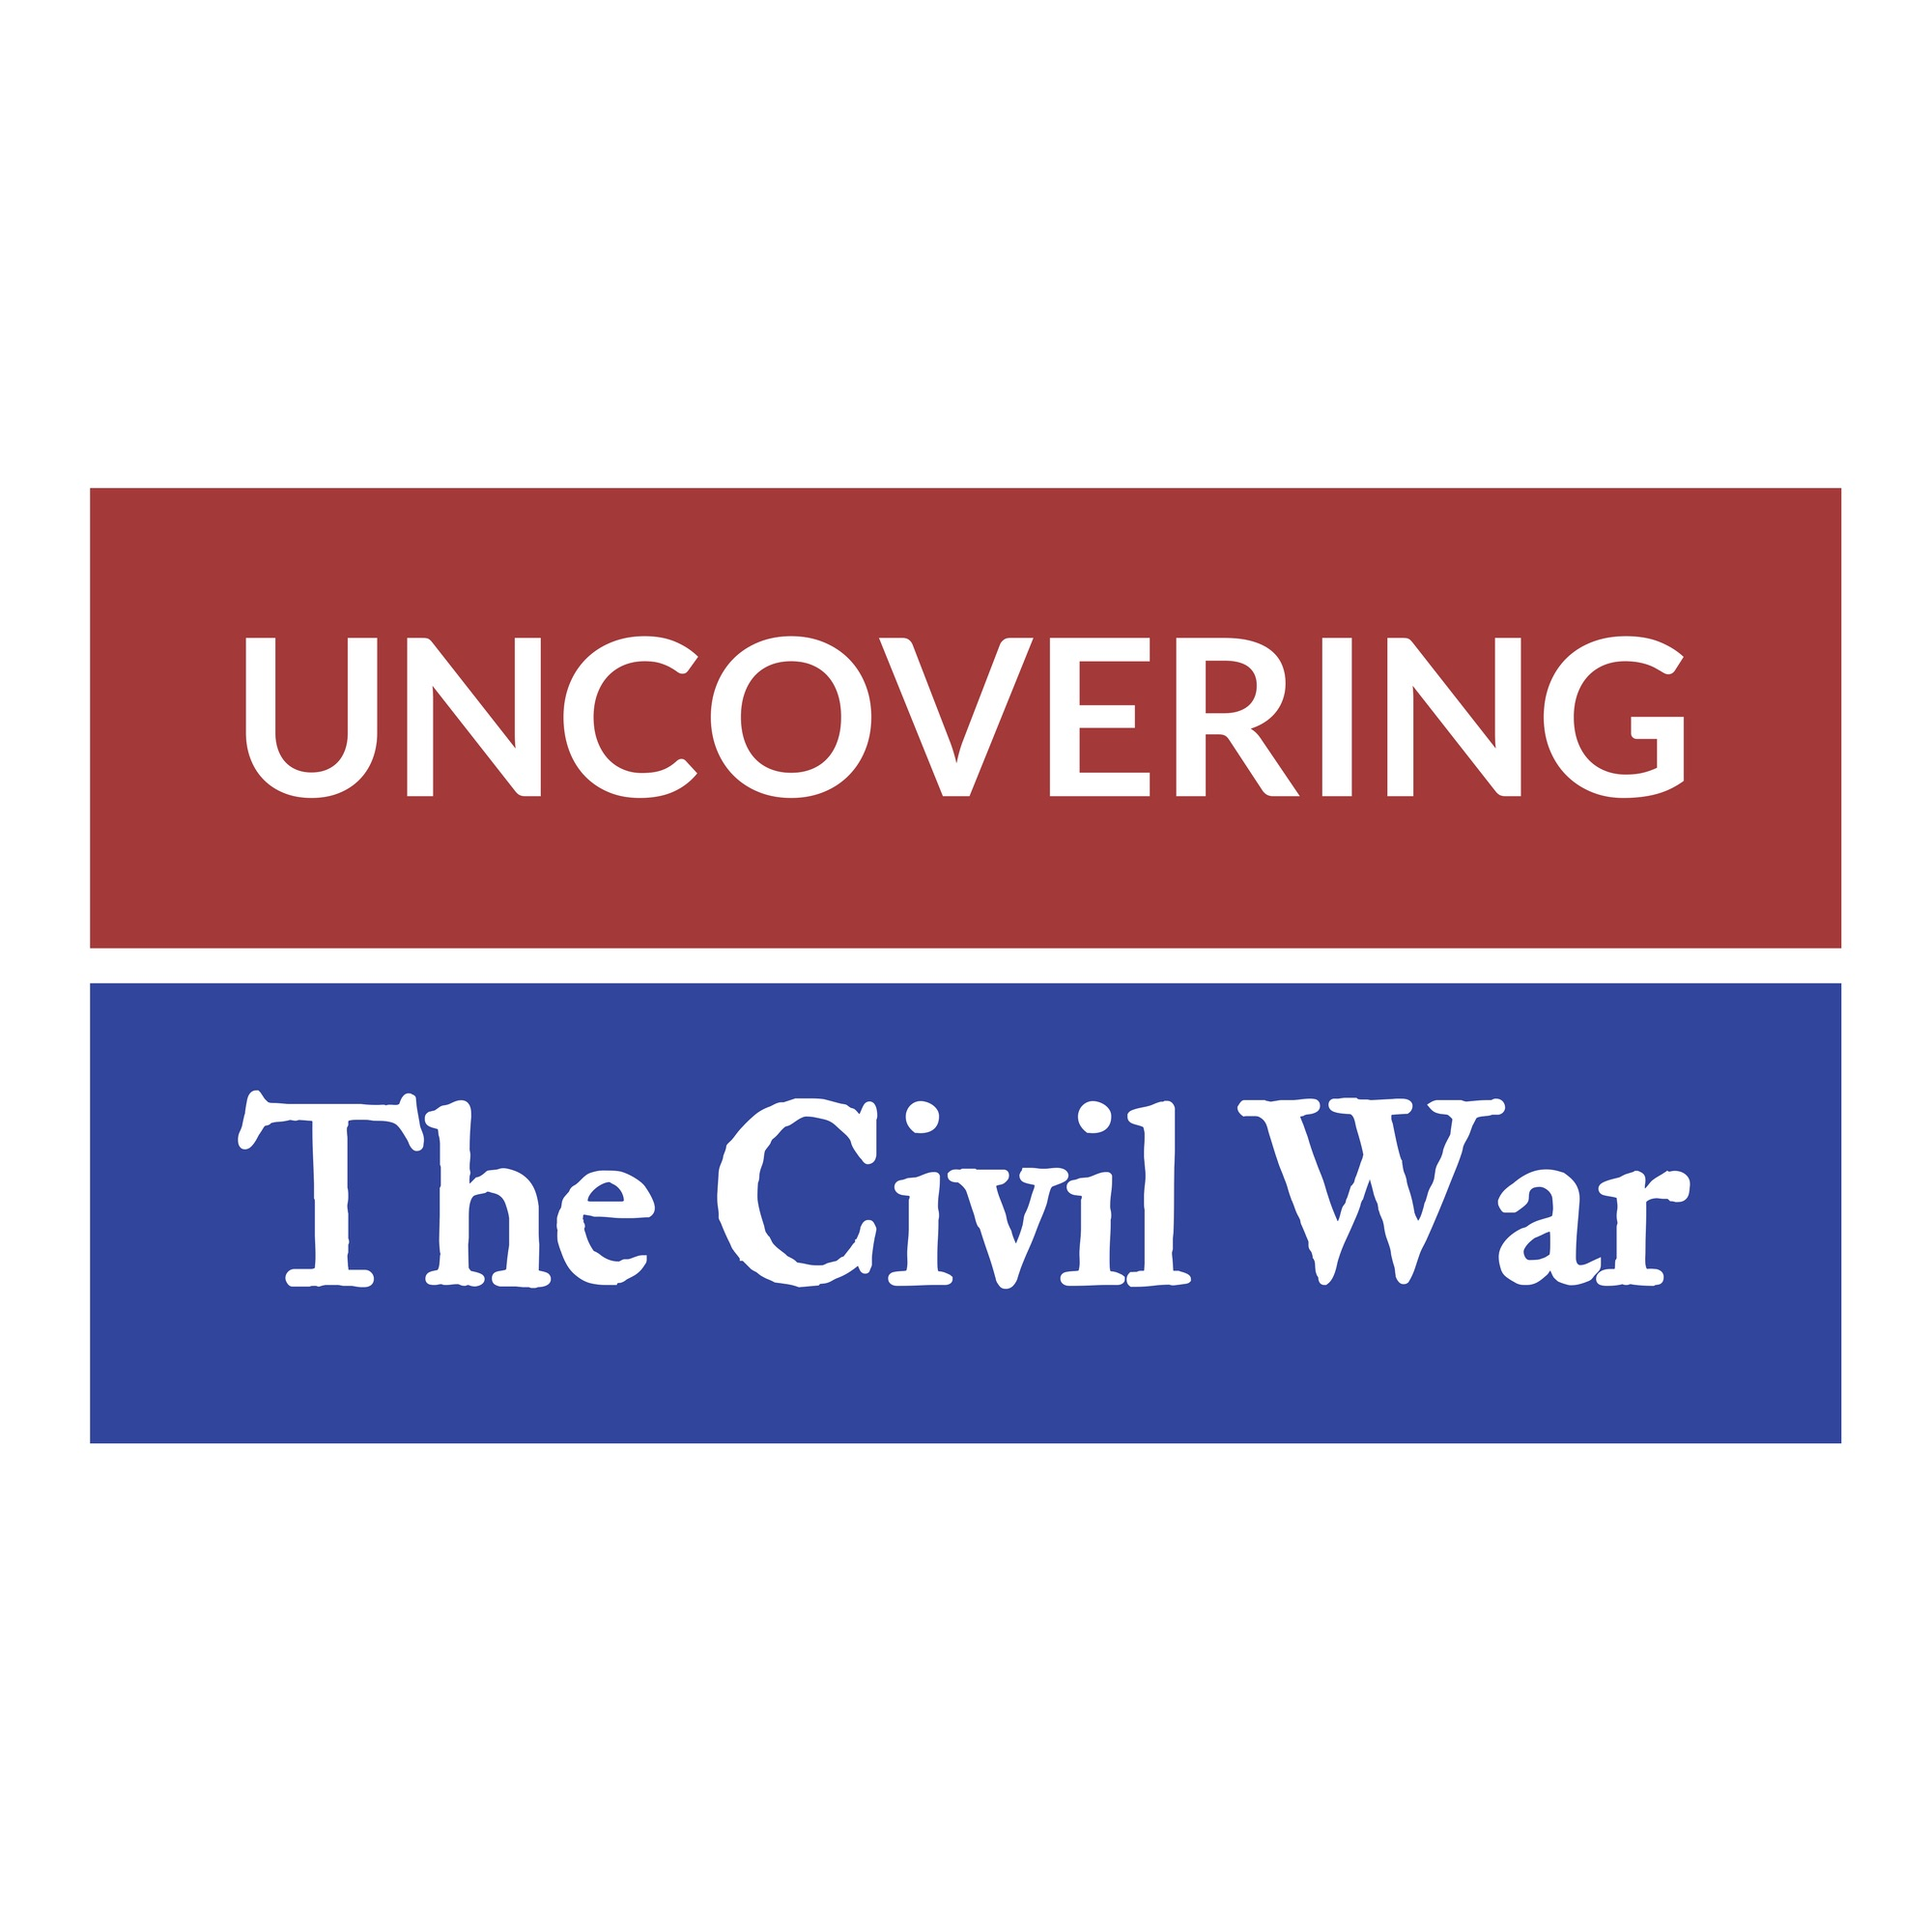 Uncovering the Civil War